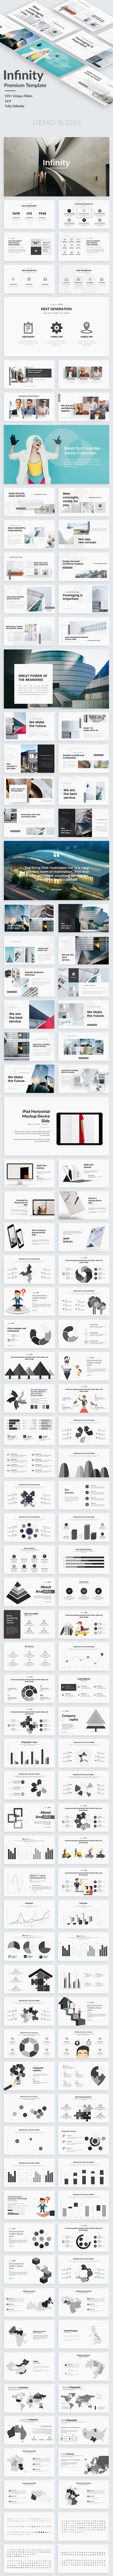 Infinity Creative Powerpoint Template - Creative PowerPoint Templates